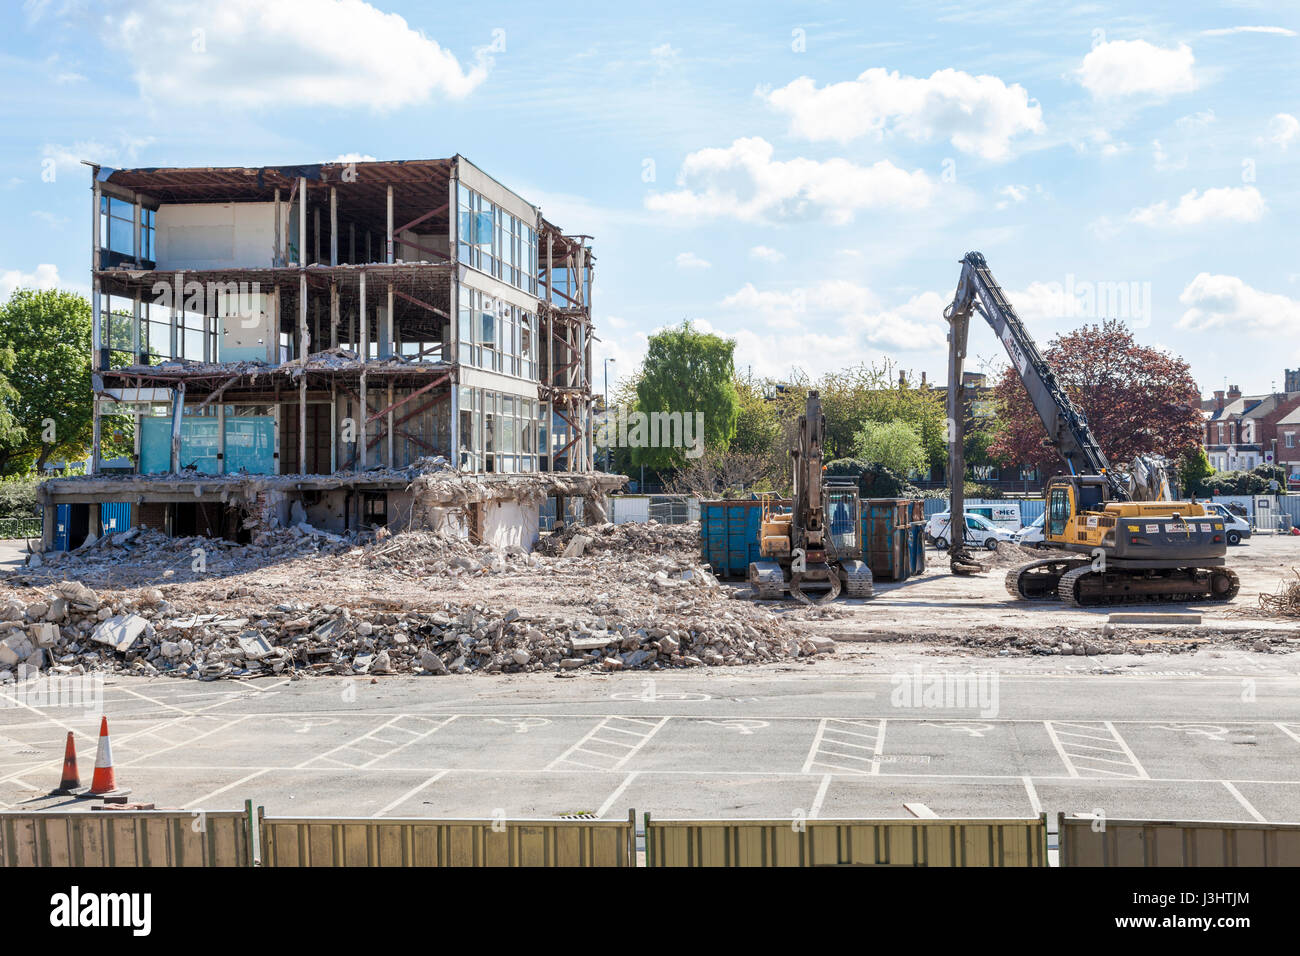 Demolition of the CLASP building at Nottinghamshire County Council, County Hall, West Bridgford, Nottinghamshire, - Stock Image